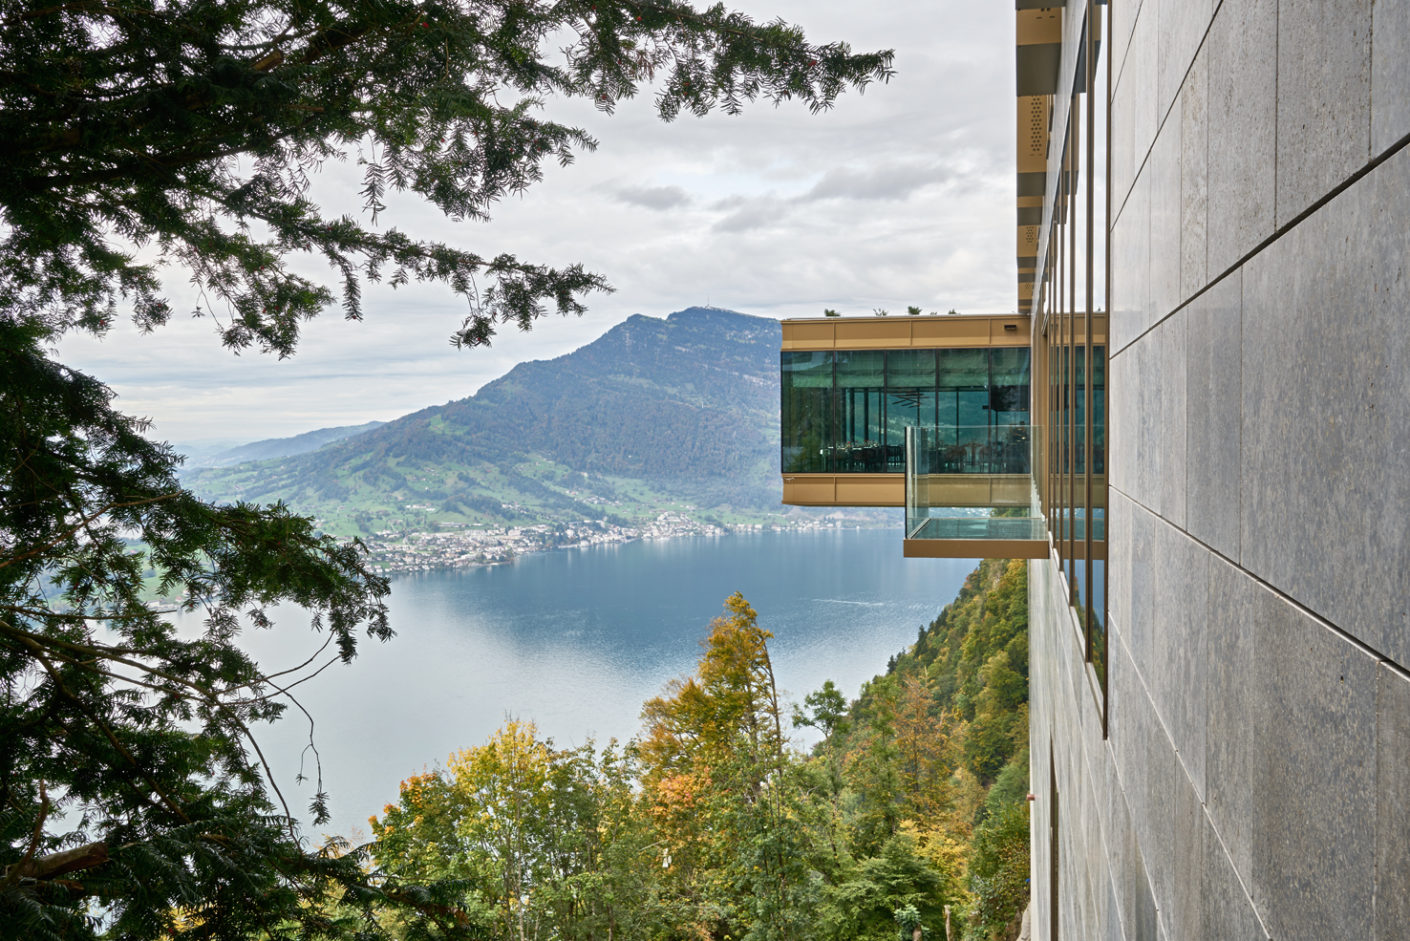 The upstream restaurant offers a panoramic view over the nearby Lake Lucerne.